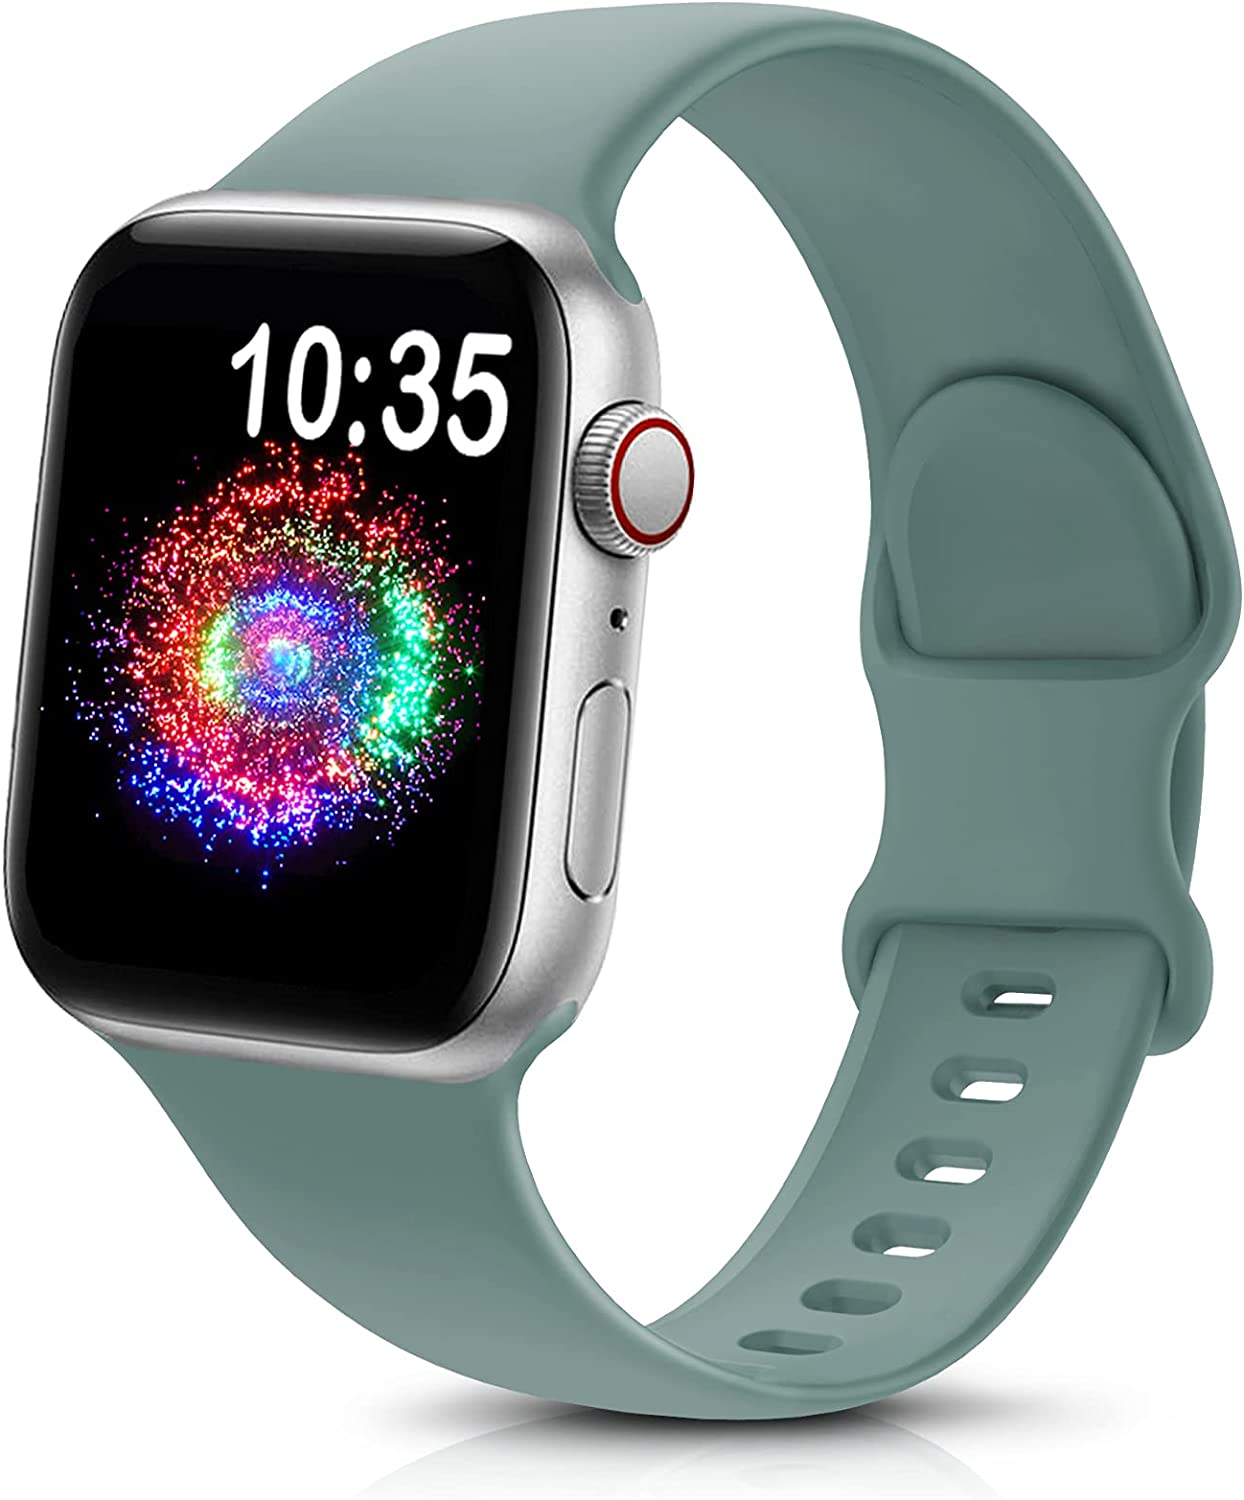 TreasureMax Sport Band Compatible with Apple Watch Bands 38mm 40mm 42mm 44mm, Soft Silicone Replacement Strap Compatible for Apple Watch Series 6 5 4 3 2 1 SE Men Women Cactus 38MM/40MM